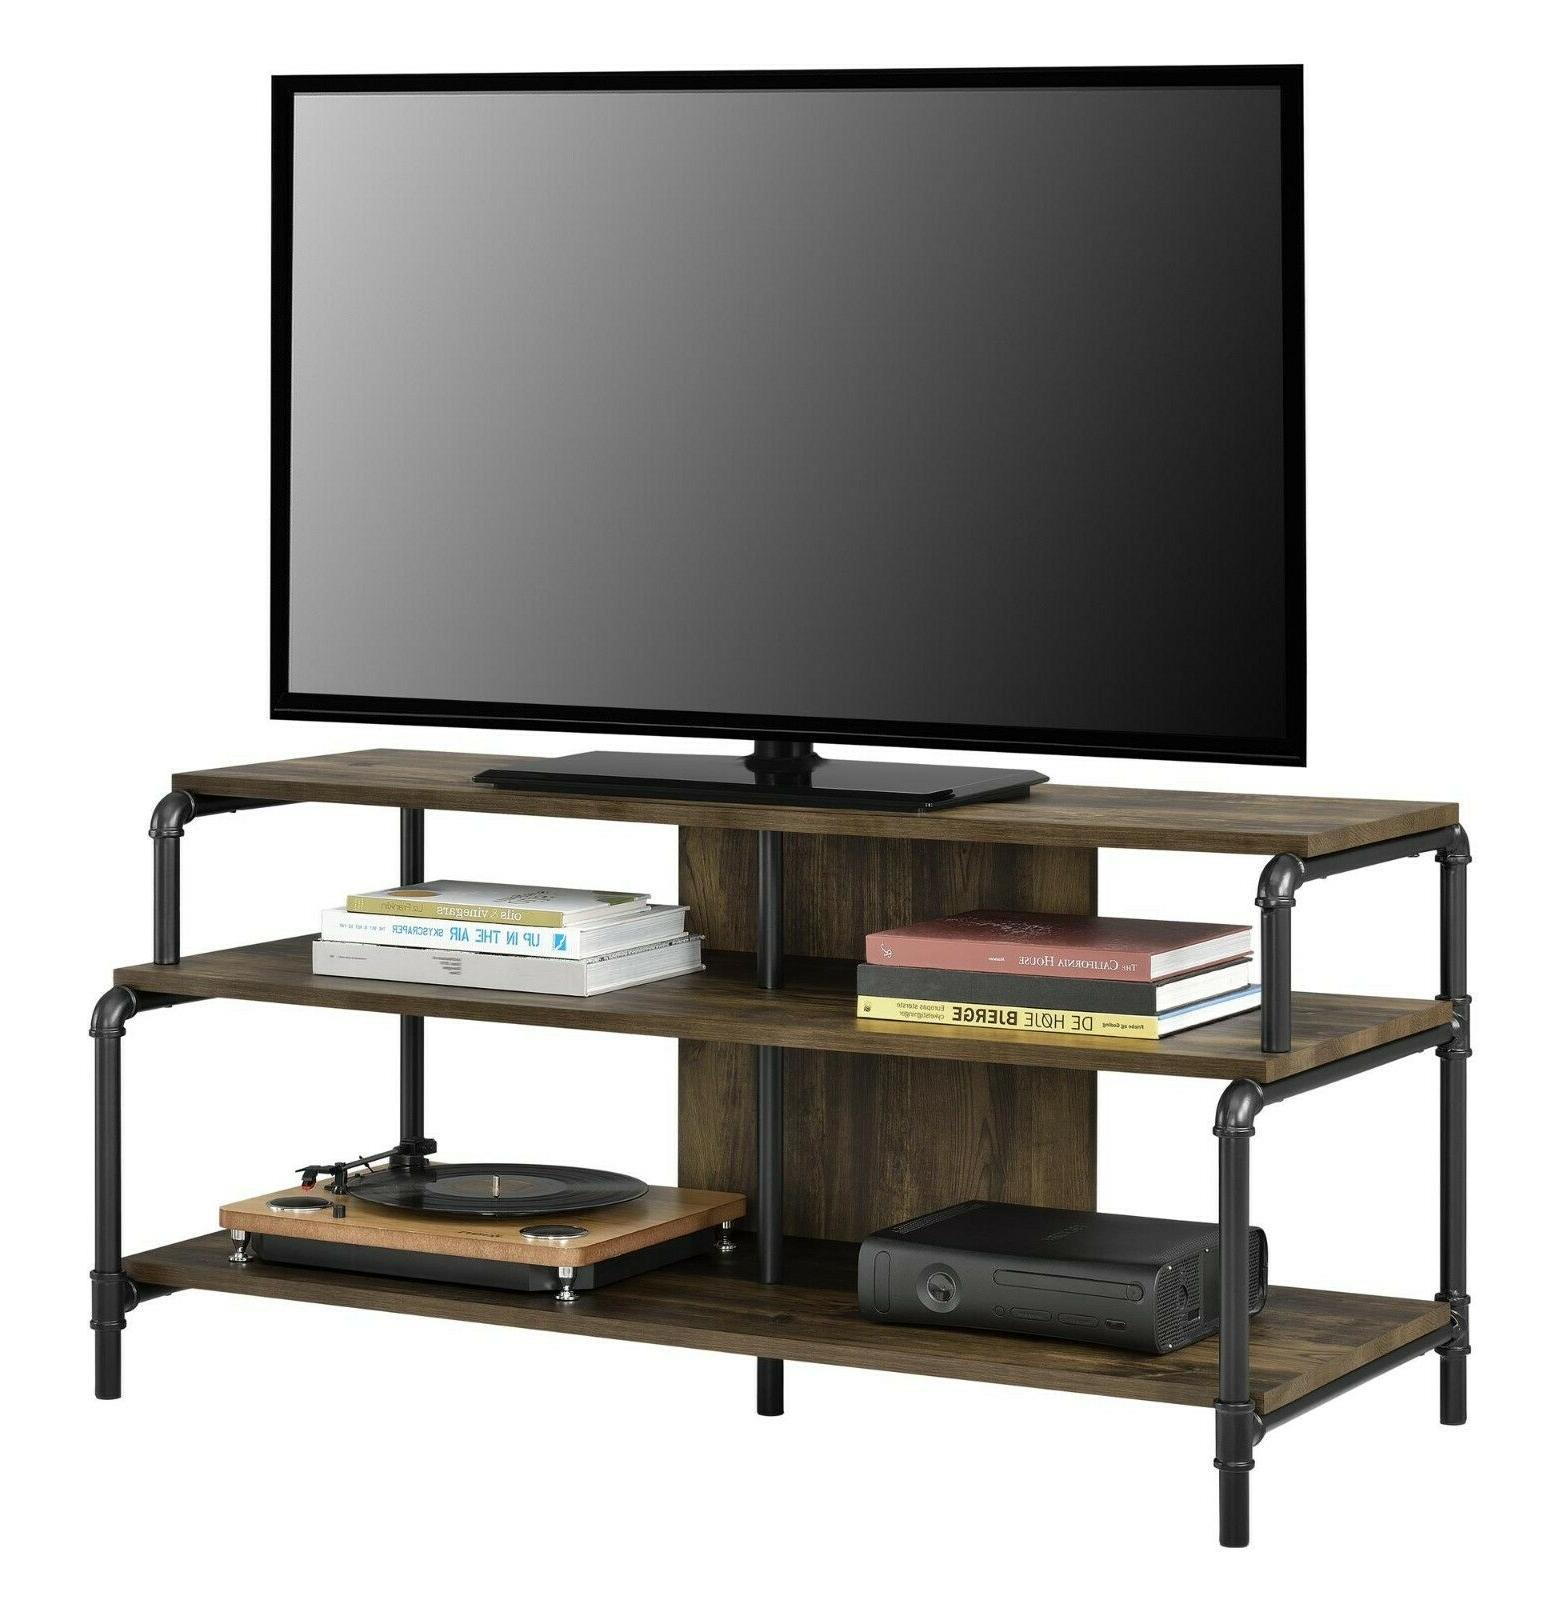 Rustic TV Stand Pipes Industrial Open Shelves Television Hol